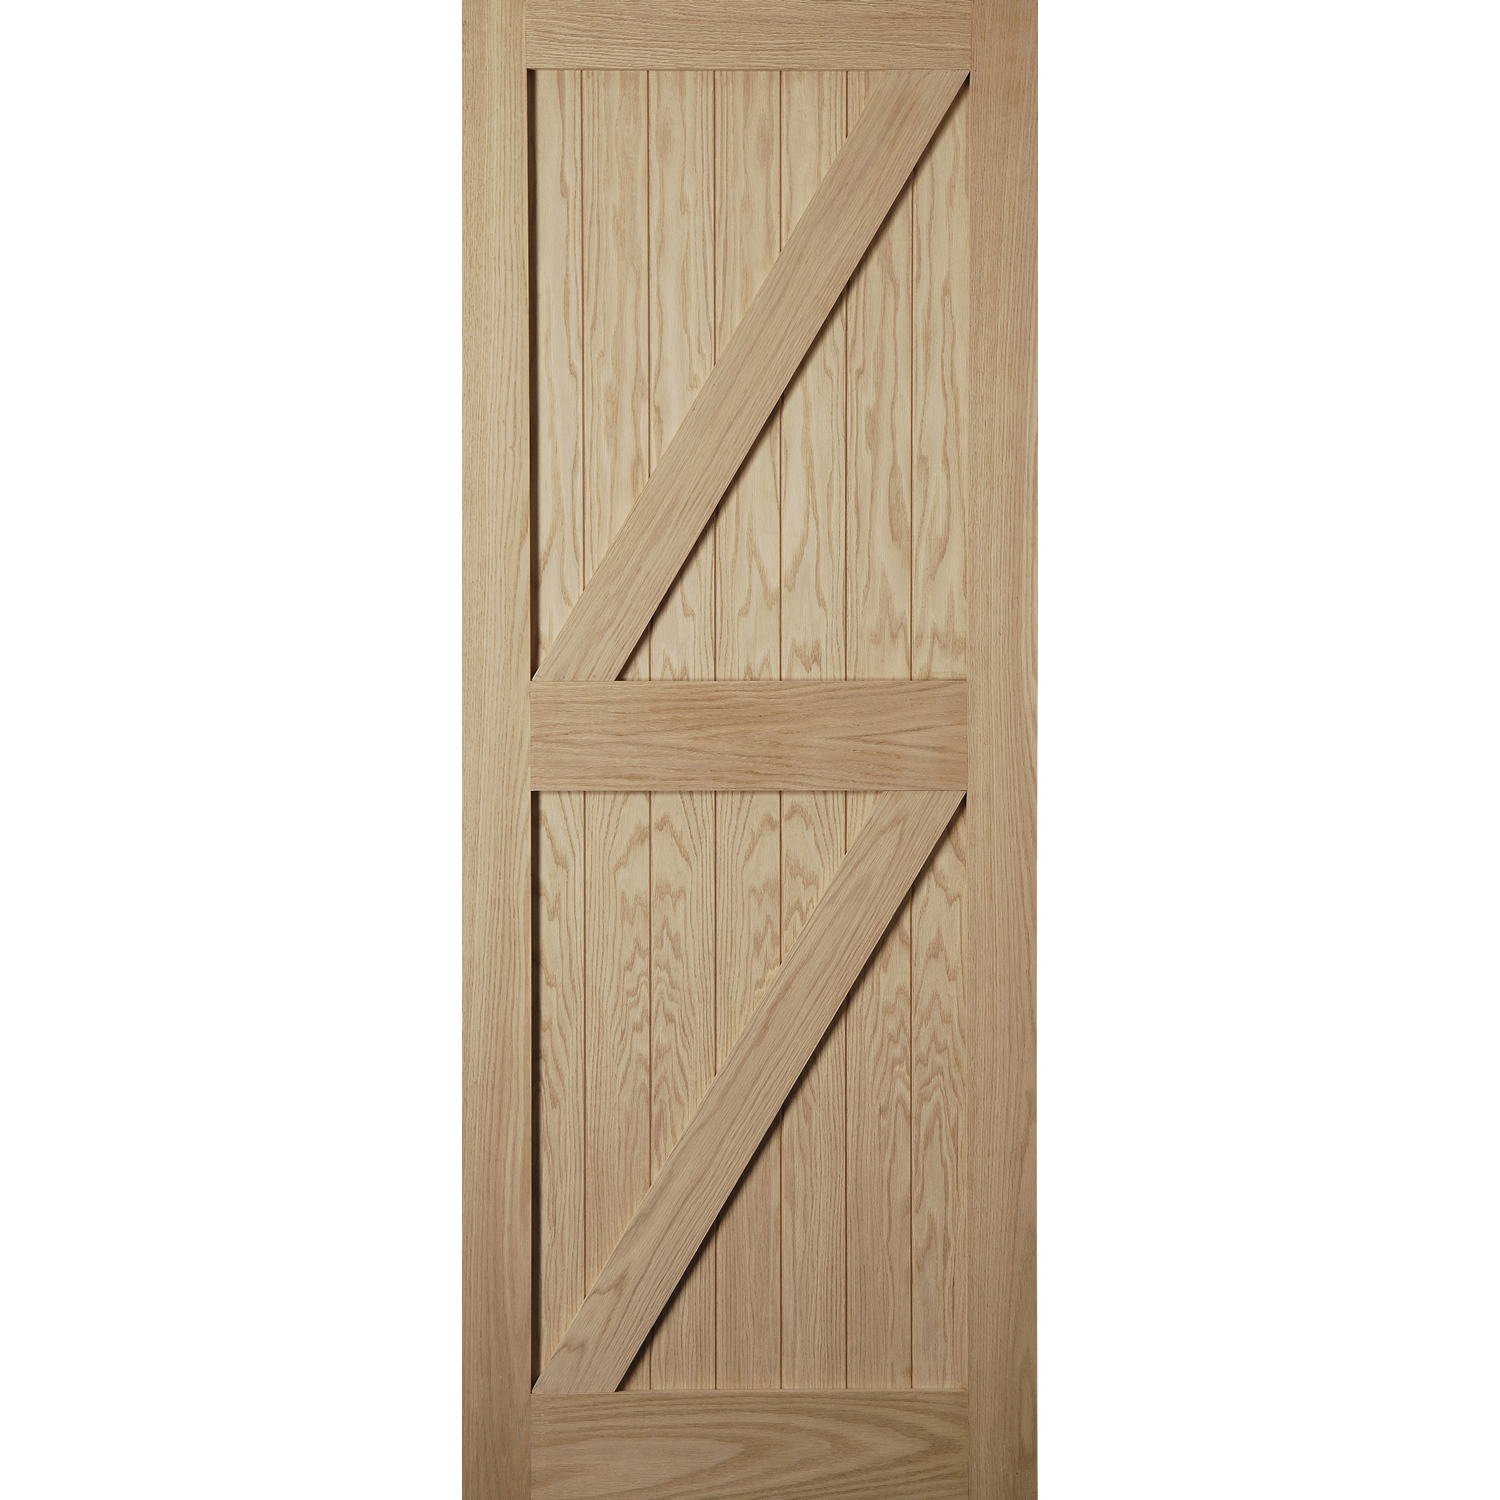 Framed Door Services - Door Services Ashland, New Hampshire